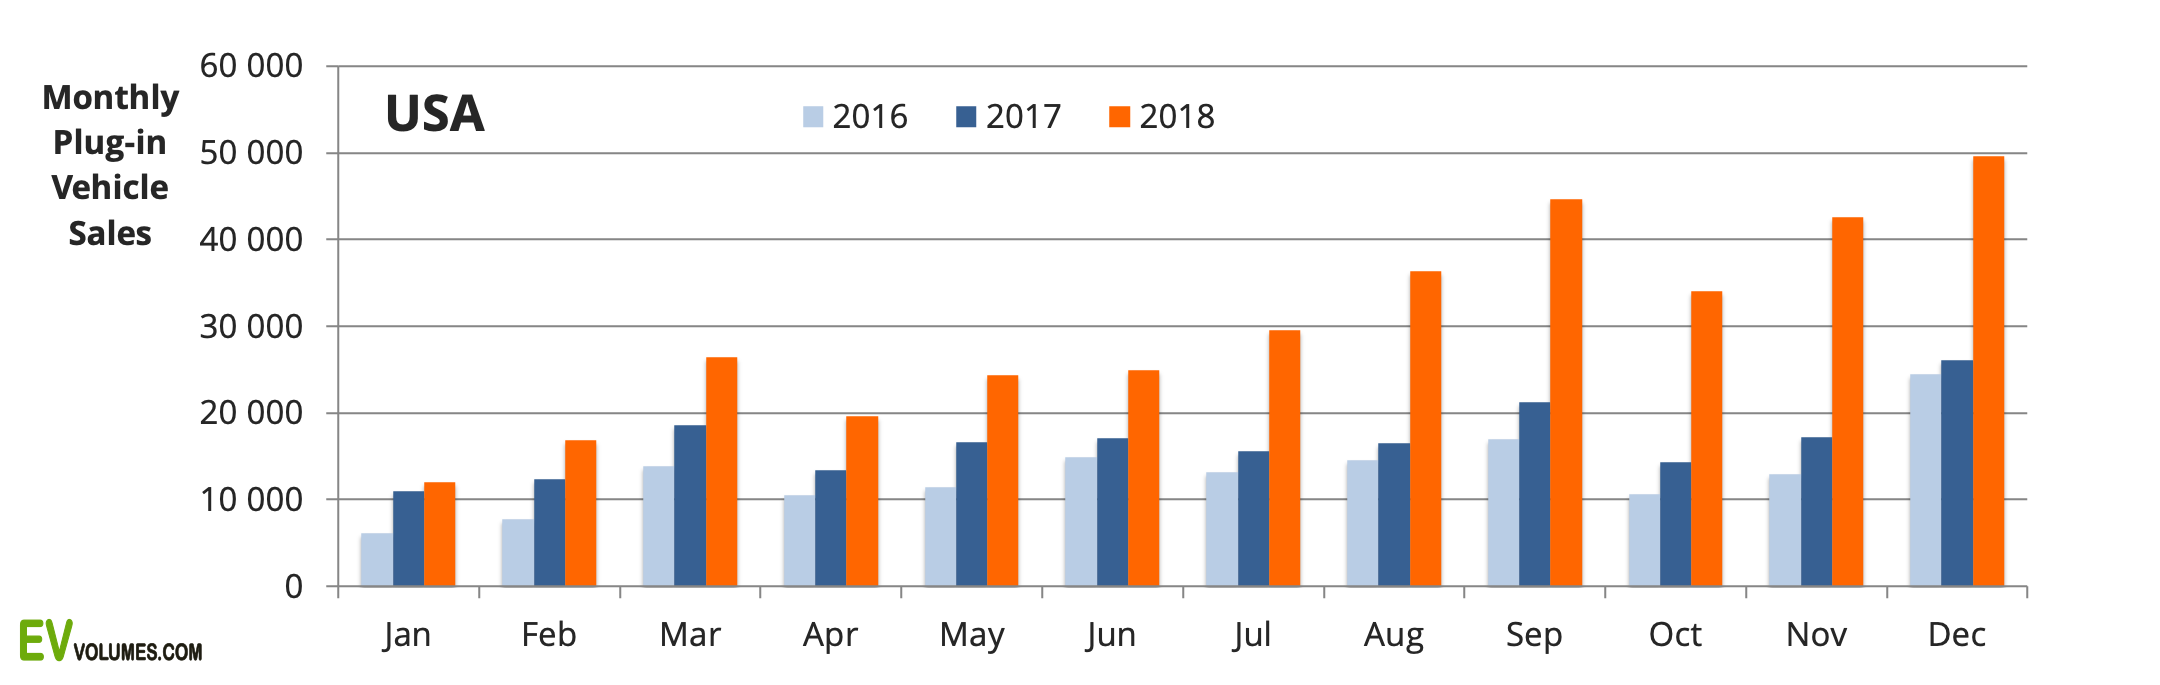 first USA Plug-in Sales for 2018 Full Year image